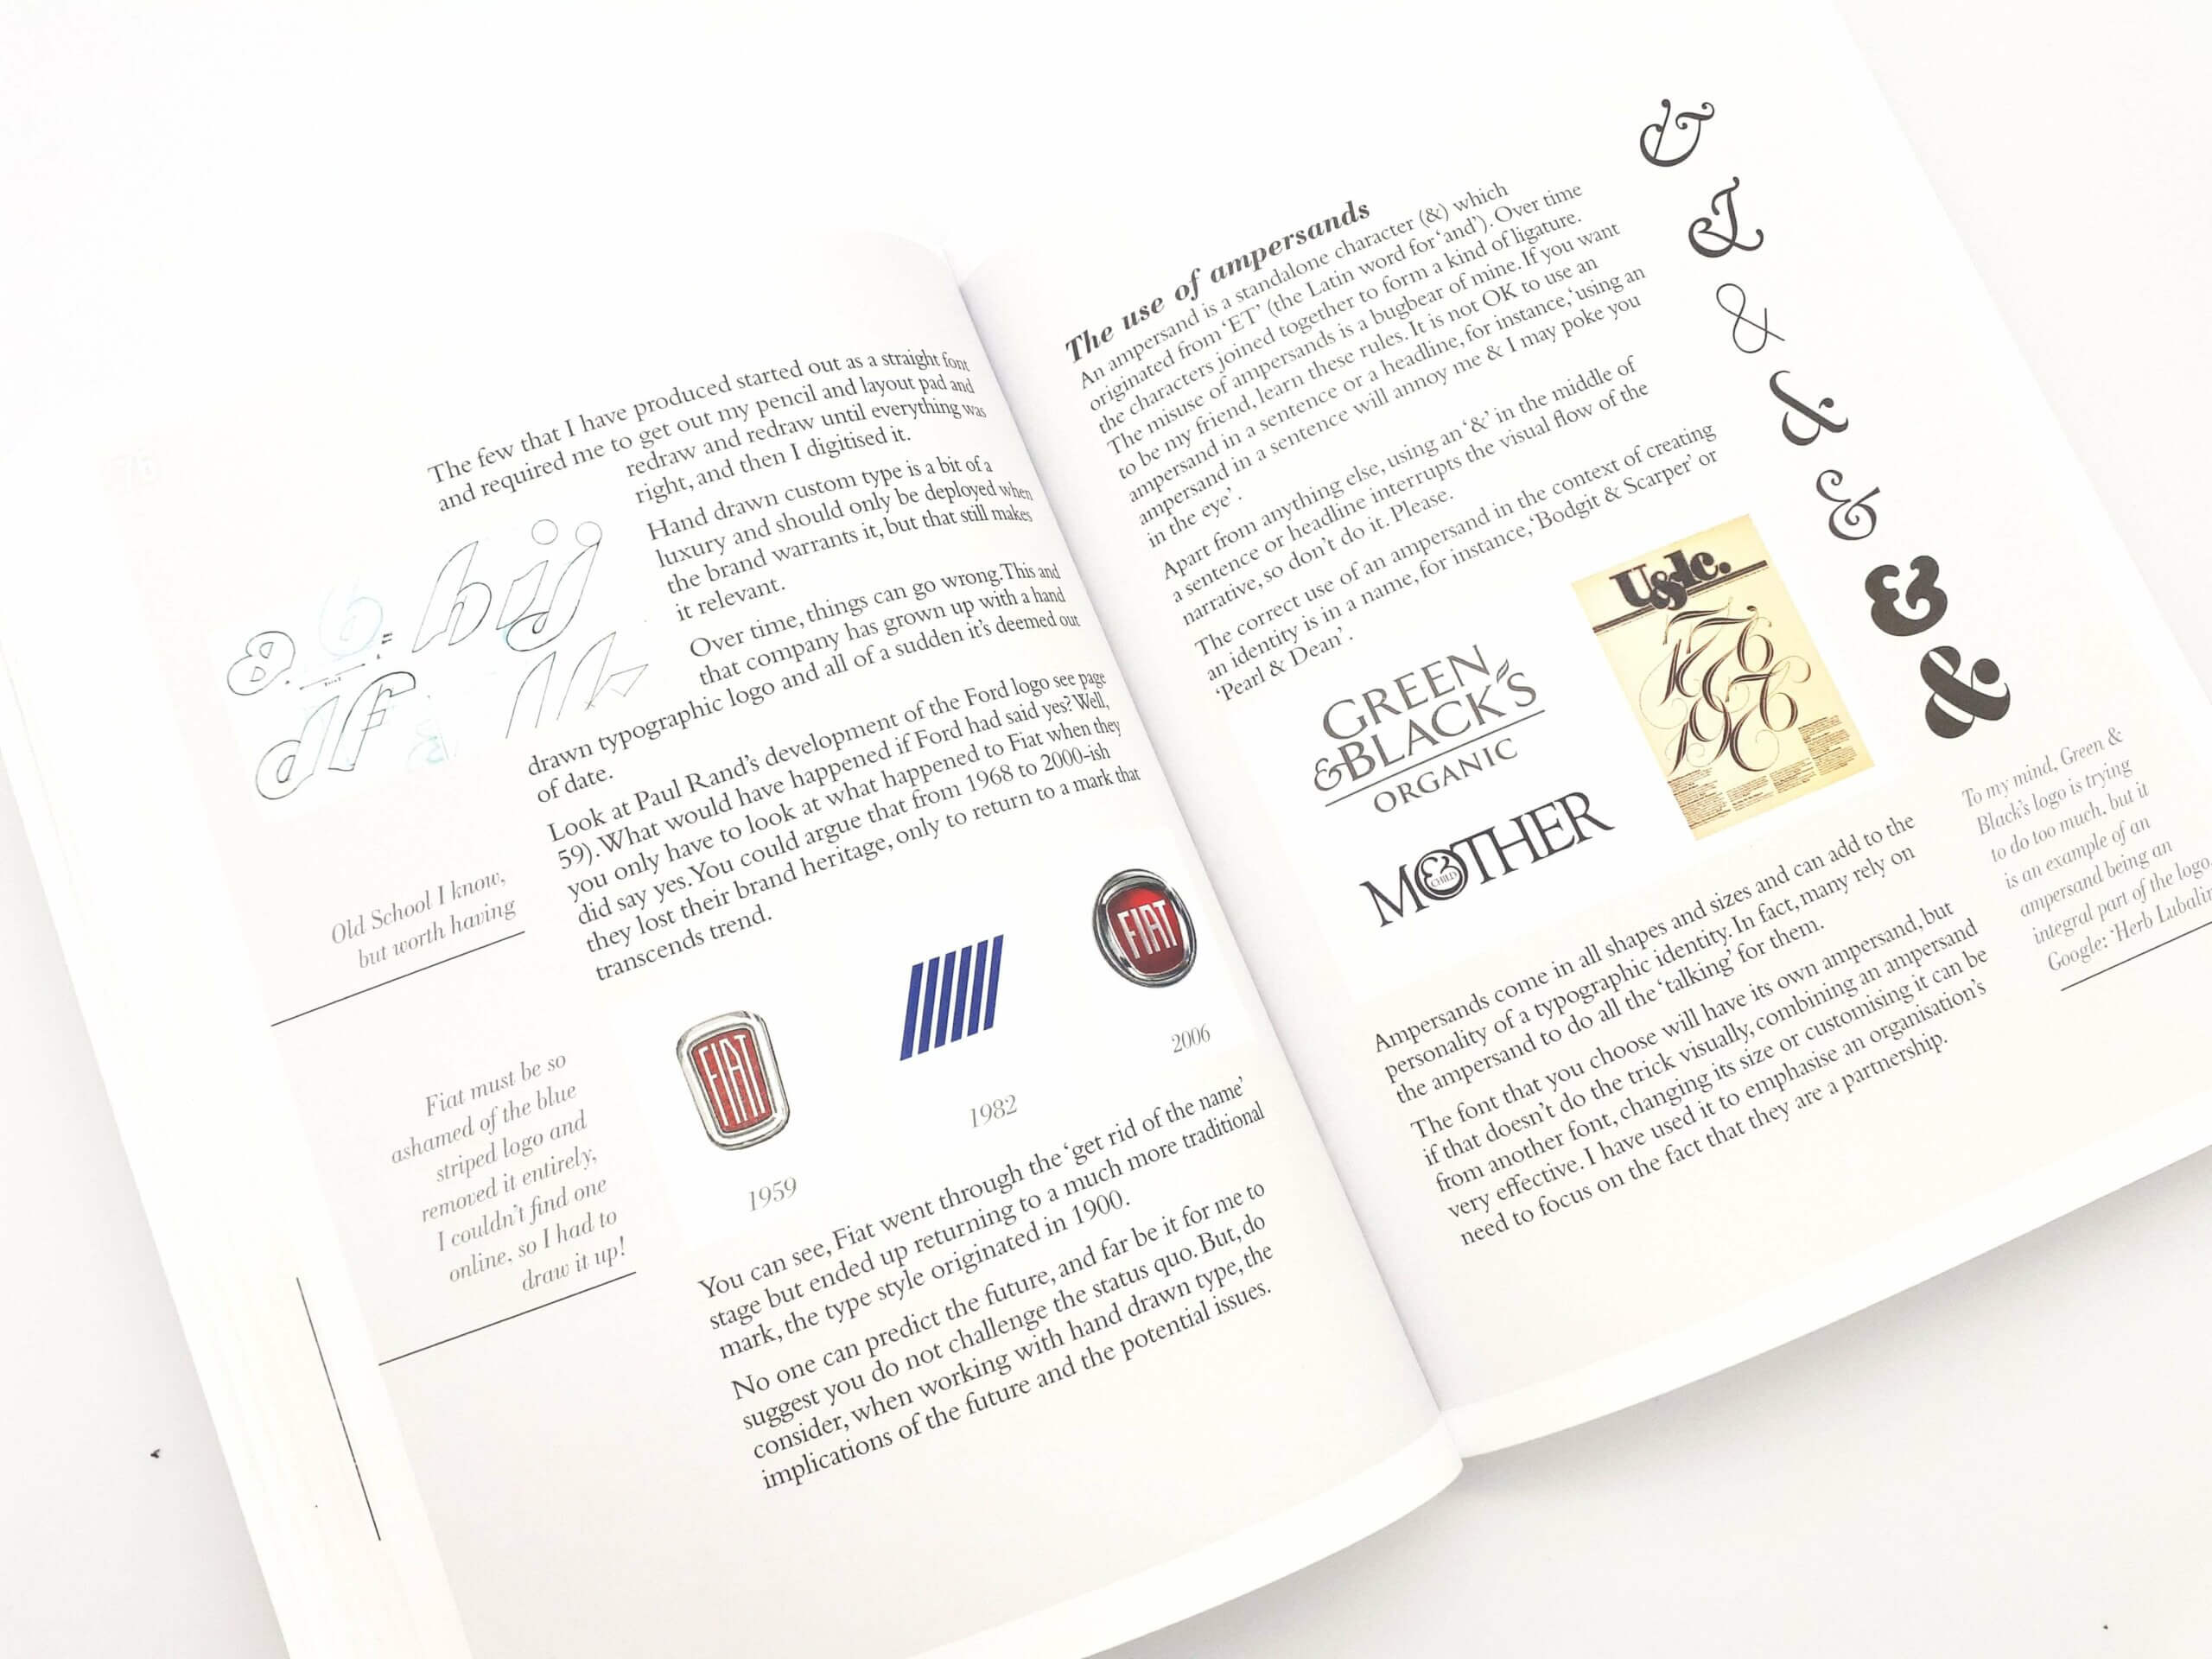 Know Your Onions - Corporate Identity By Drew de Soto - Book Review_8